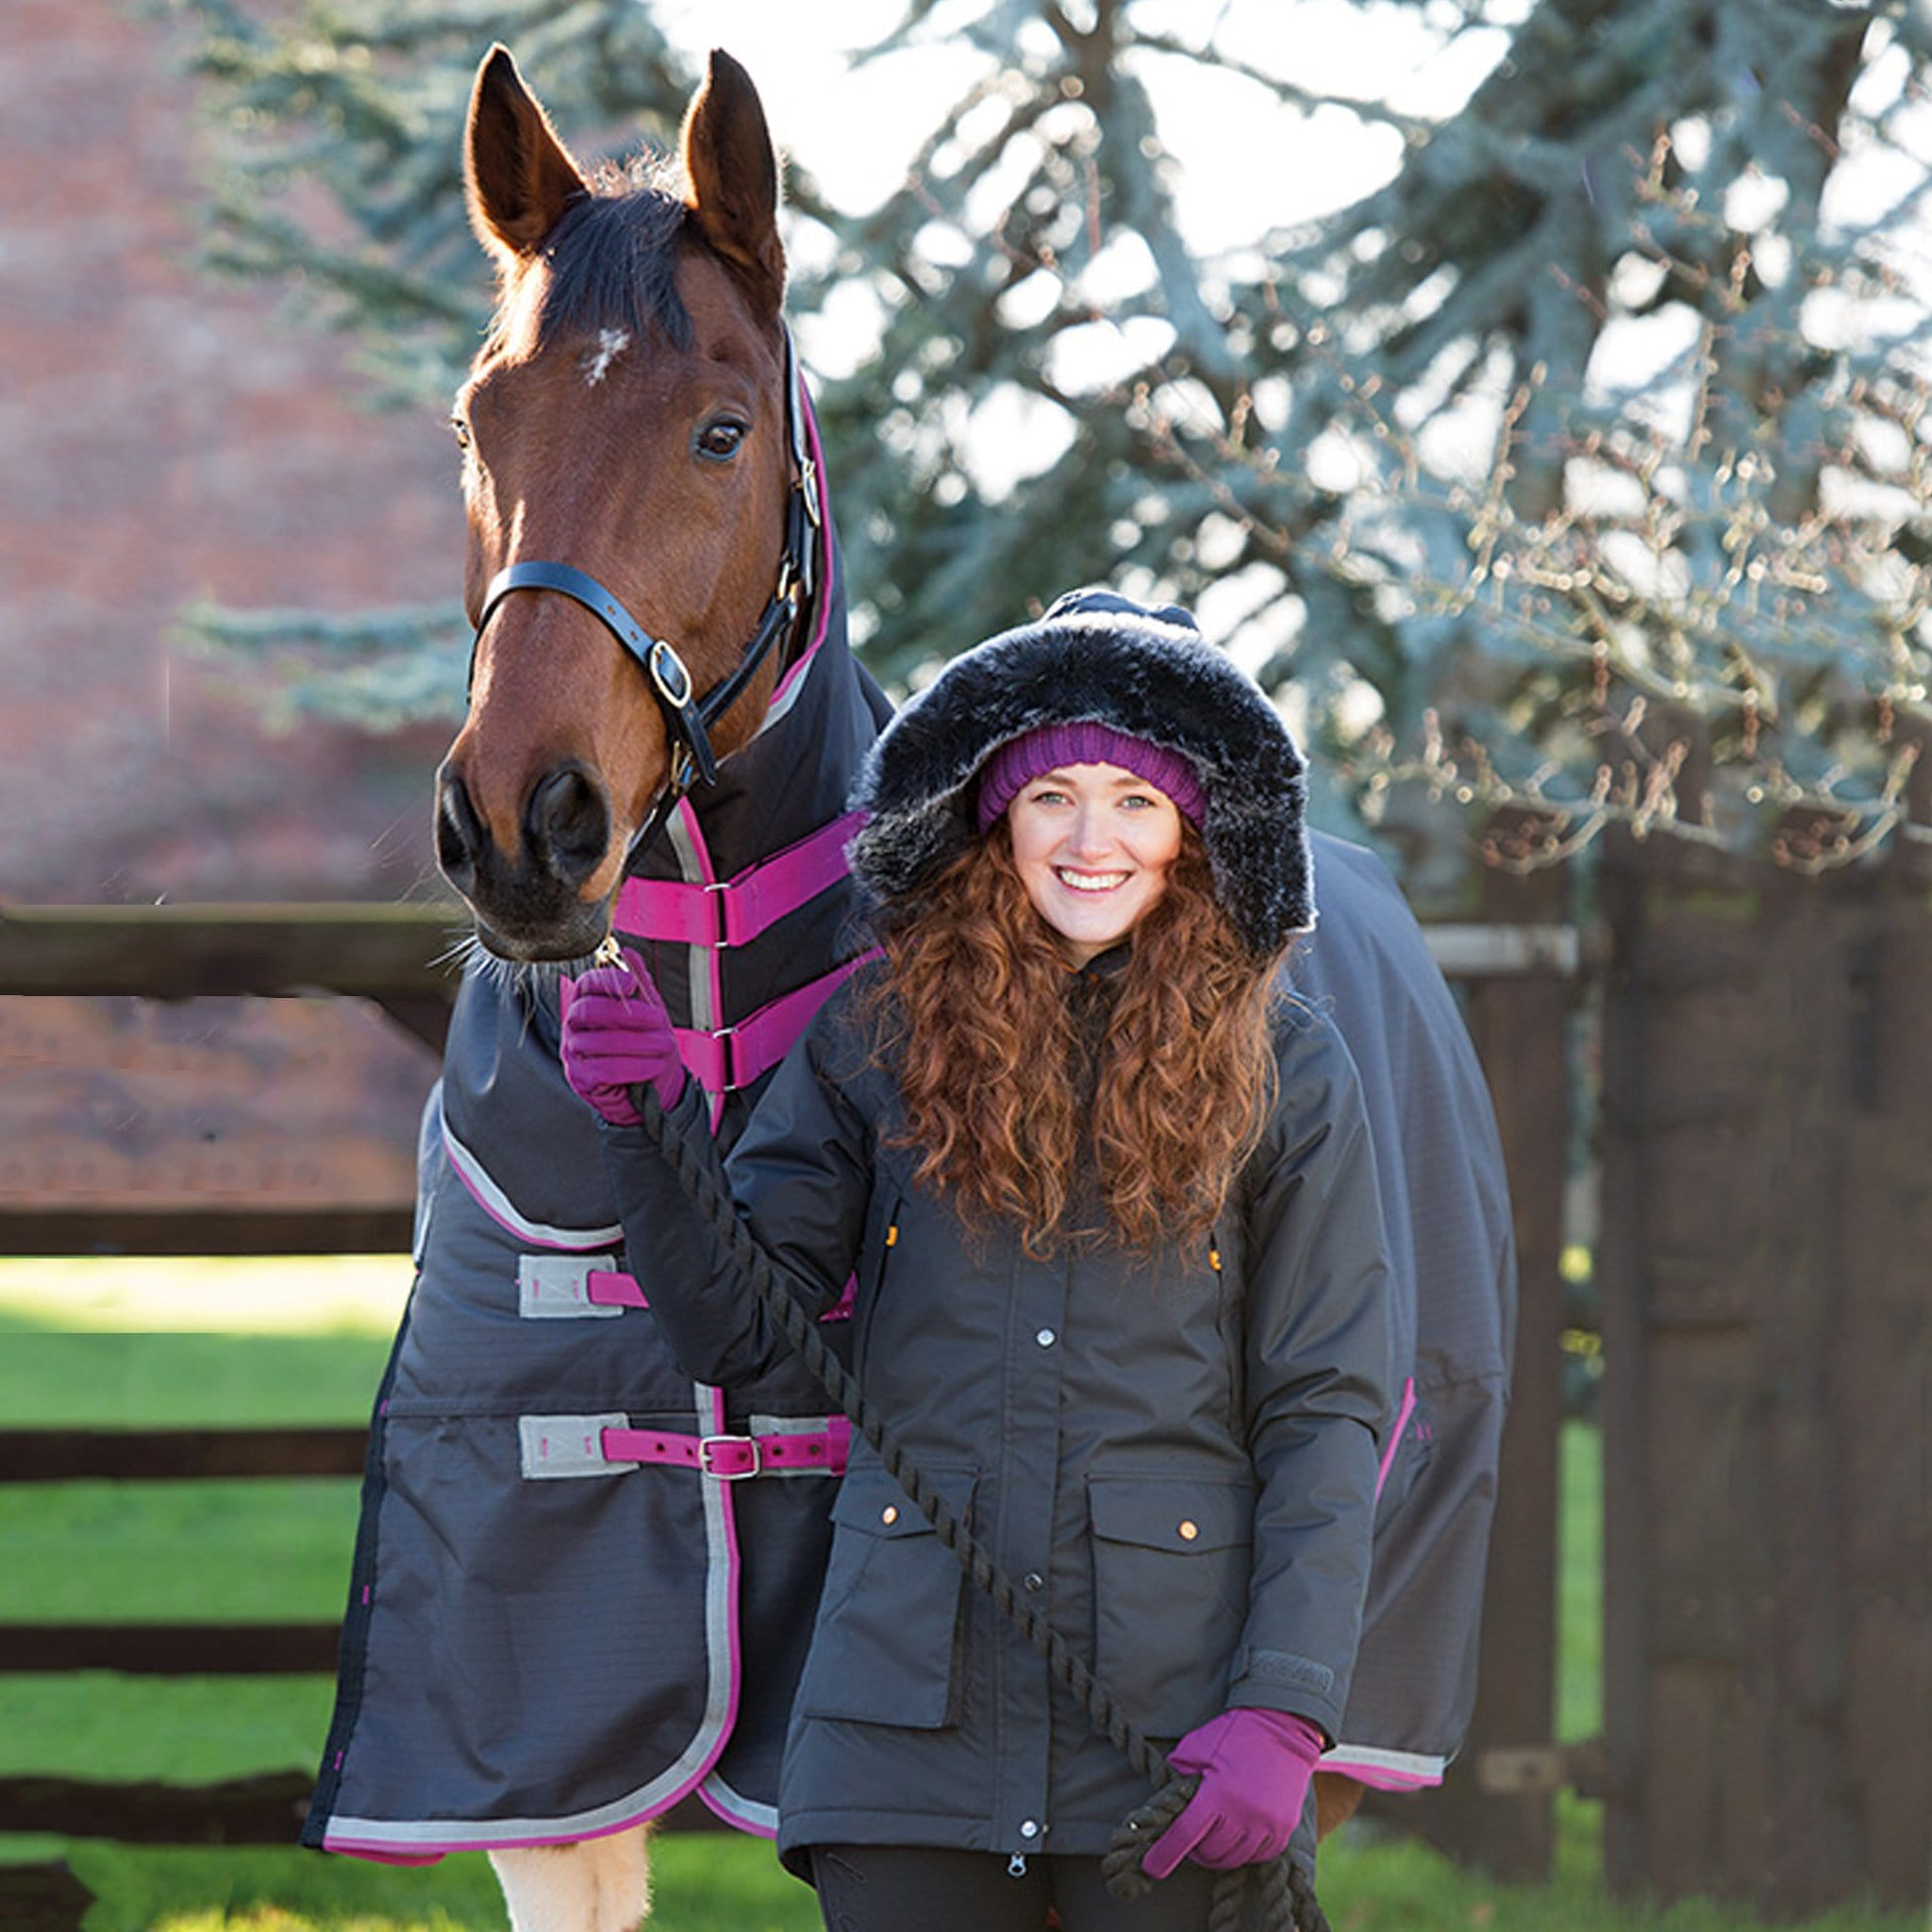 Shires Aubrion Arlington Coat Model With Horse 9101